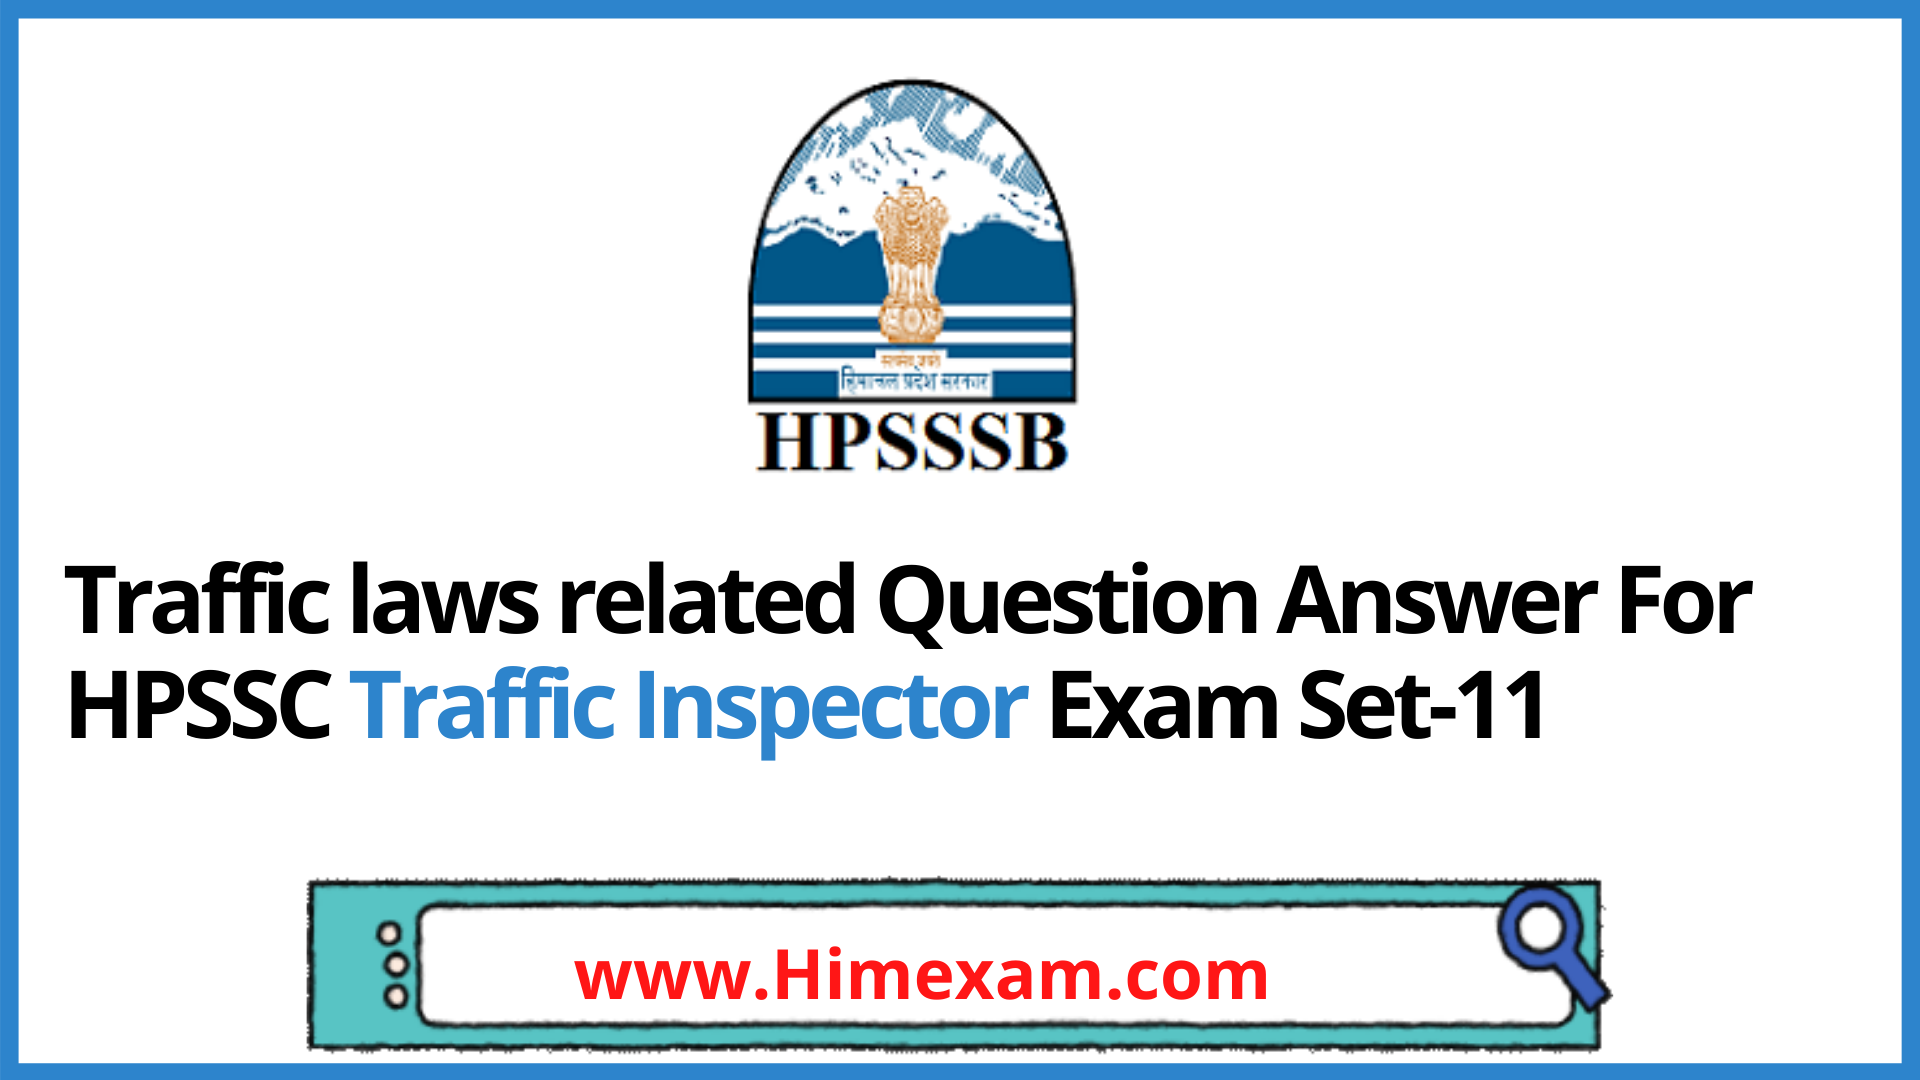 Traffic laws related Question Answer For HPSSC Traffic Inspector Exam Set-11